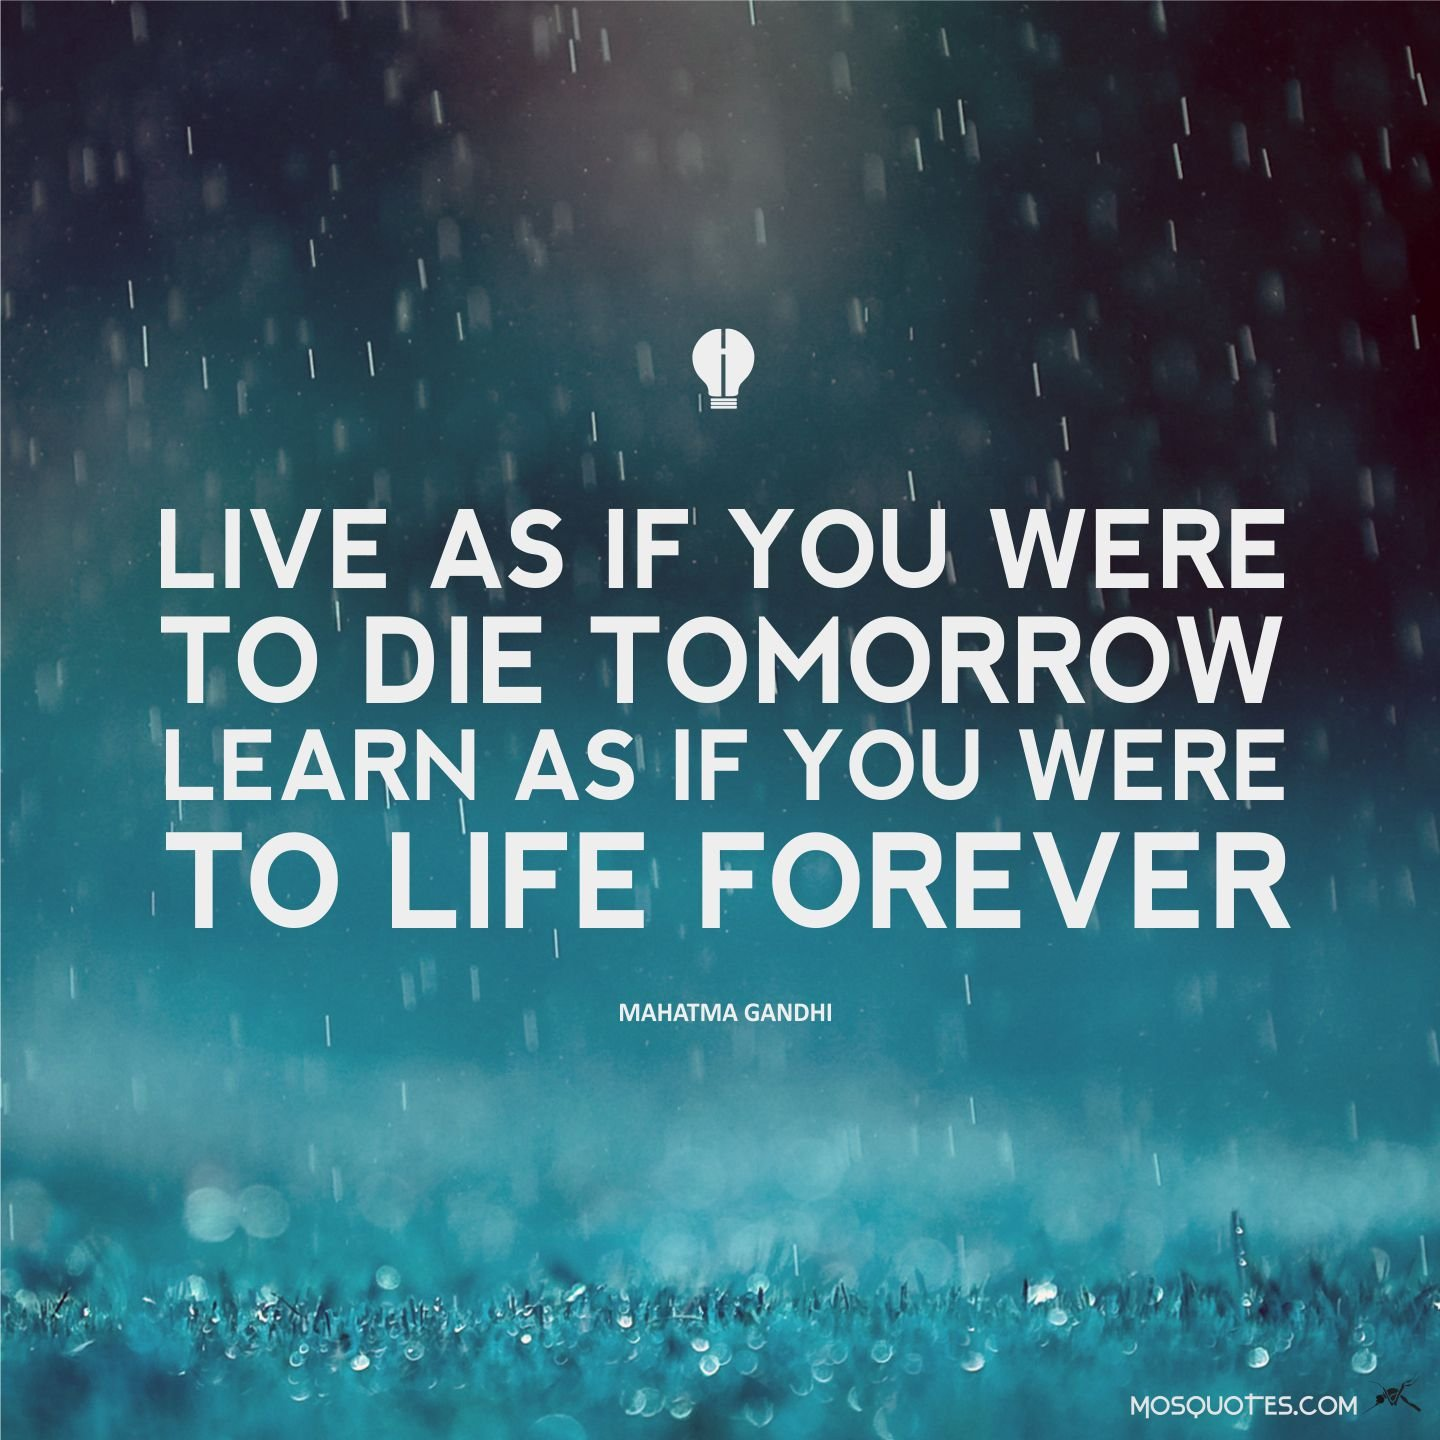 Live Quotes: Live As If You Were To Die Tomorrow Quotes. QuotesGram